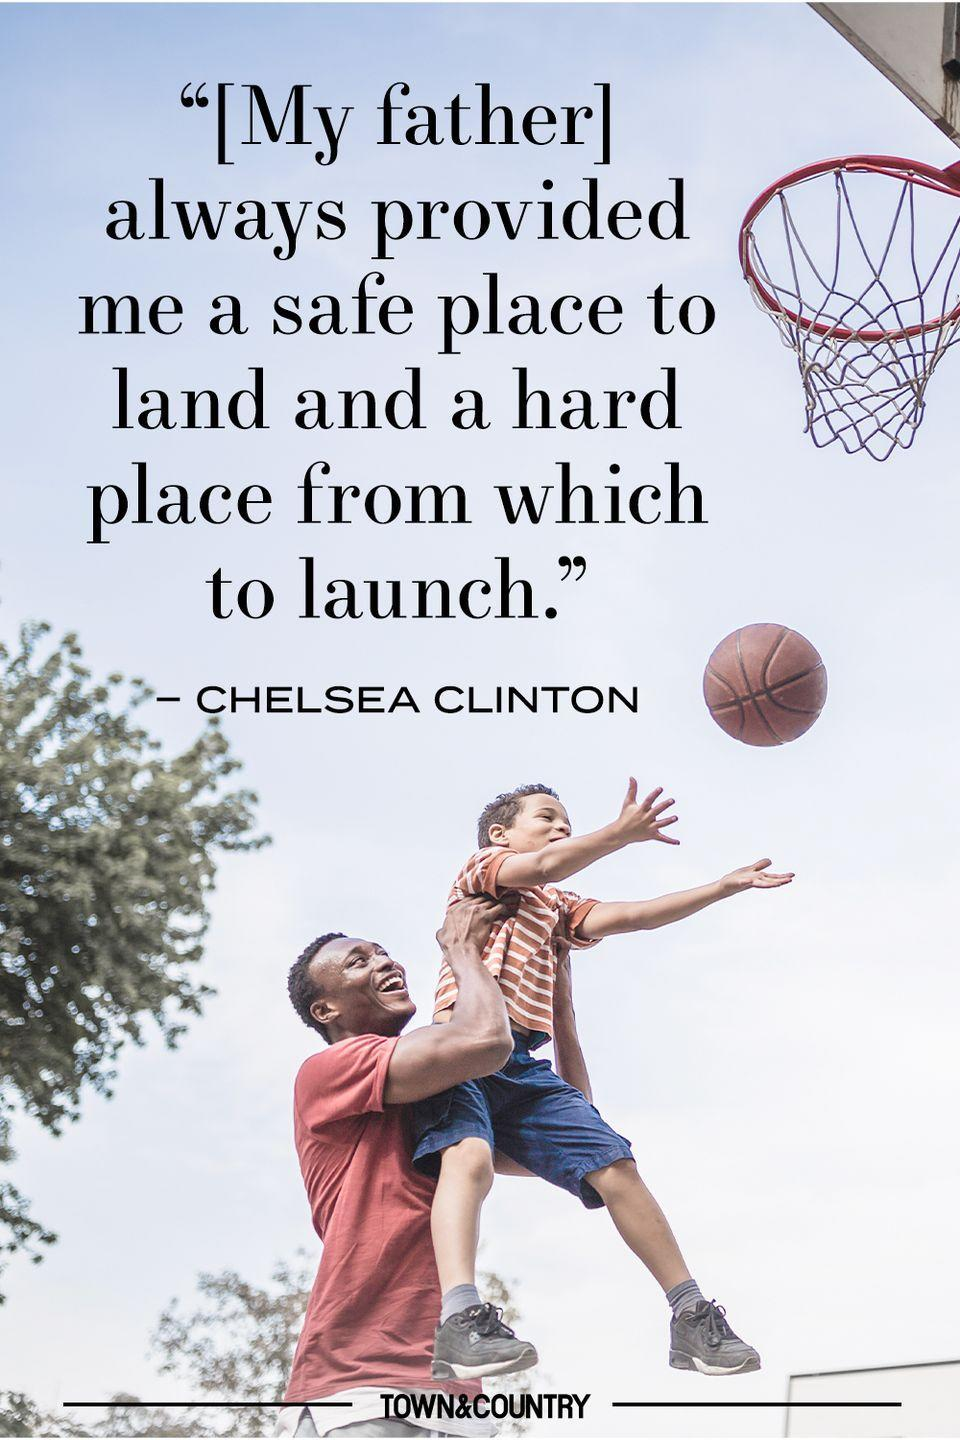 "<p>""[My father] always provided me a safe place to land and a hard place from which to launch."" </p><p>– Chelsea Clinton</p>"